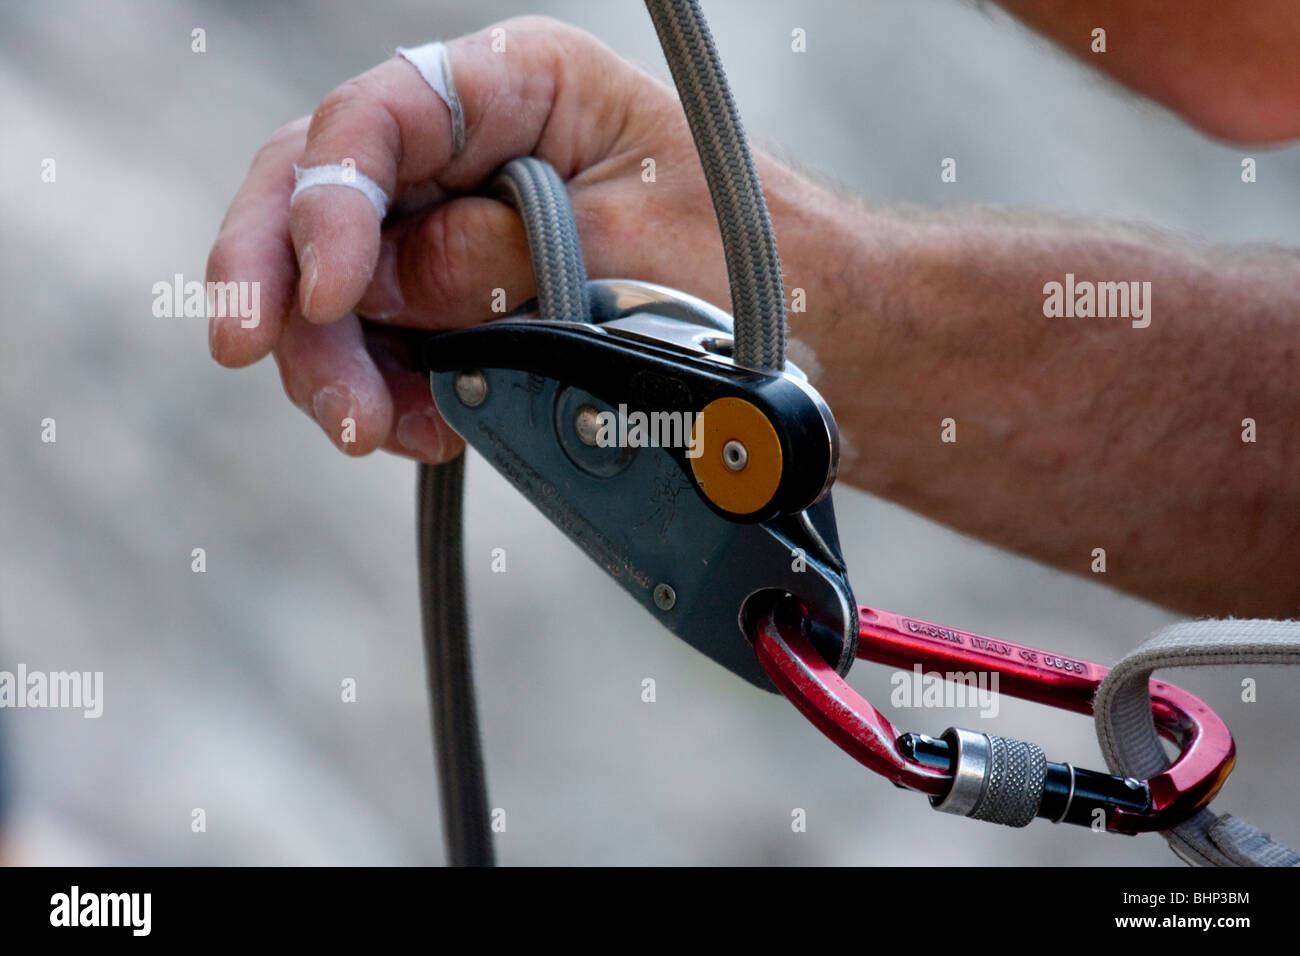 GriGri Climbers belay device and Karabiner used for rockclimbing, Bellus, Spain - Stock Image